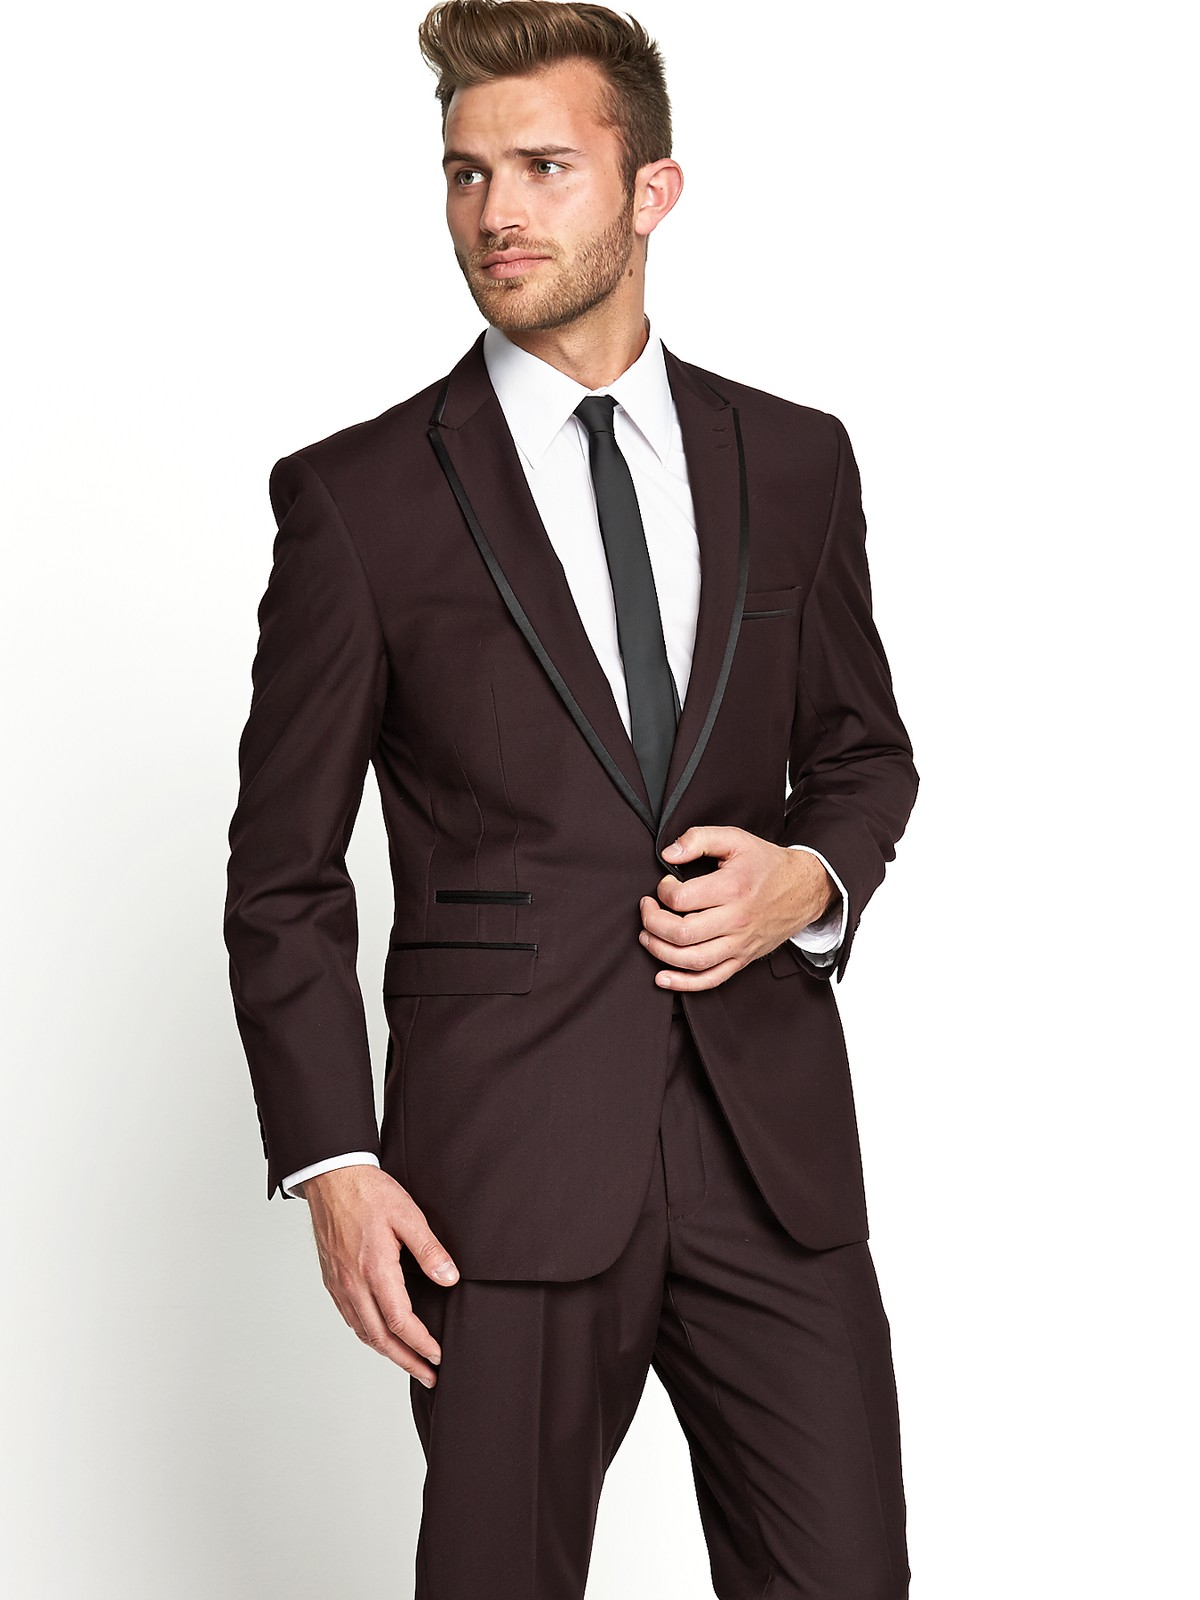 Free shipping at the Tuxedo Shop at teraisompcz8d.ga Shop tuxedos, tuxedo shirts, ties, shoes for weddings and formal occassions. Totally free shipping and returns.